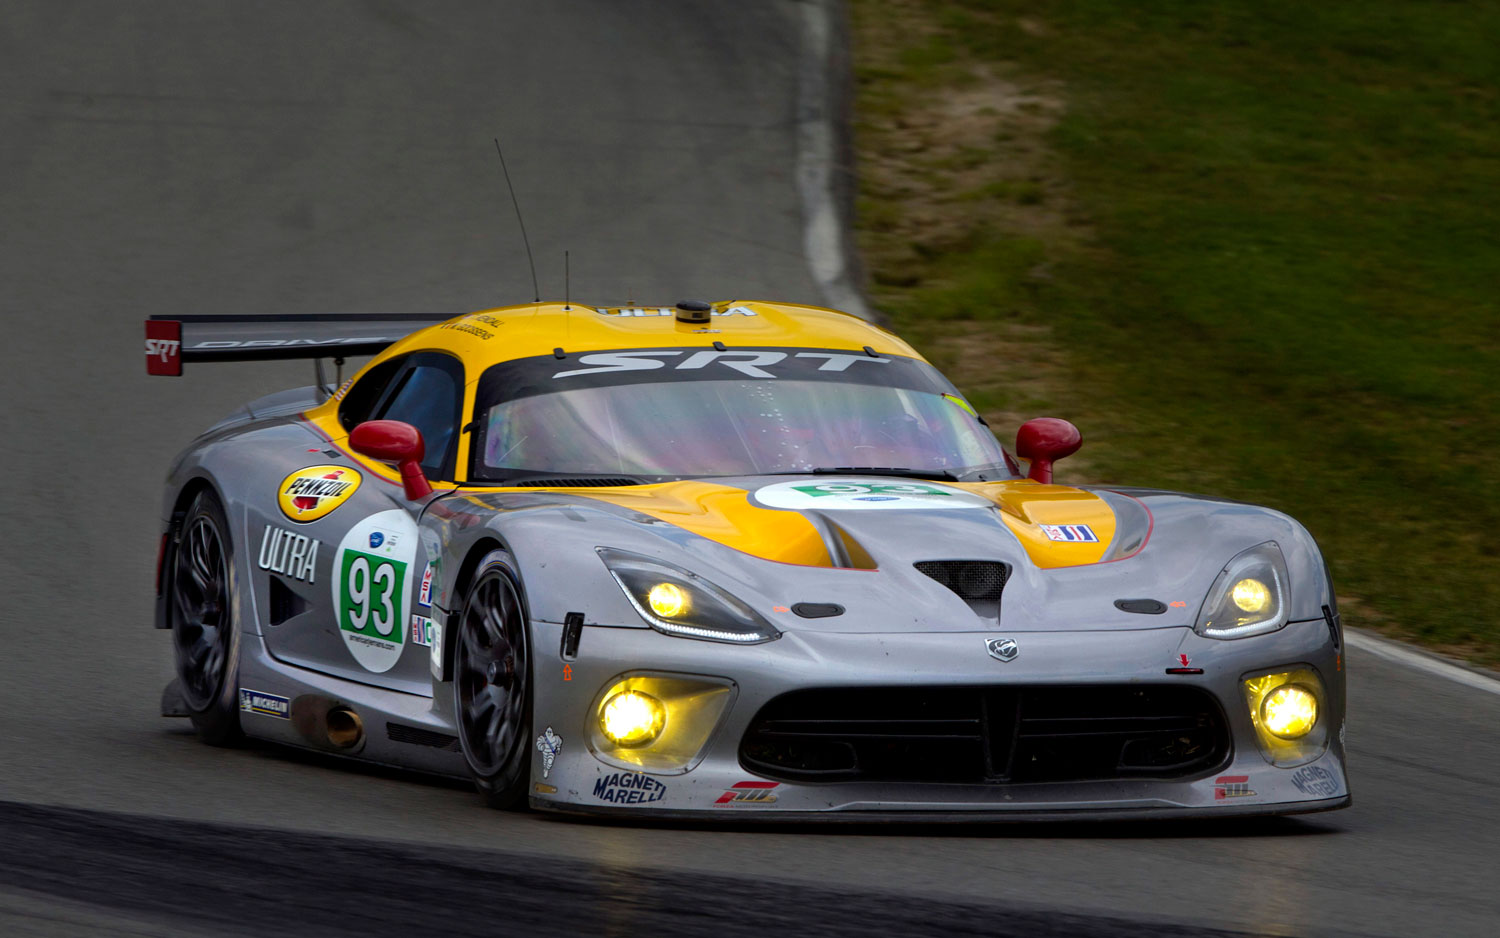 2013 SRT Viper Race Car On Track1